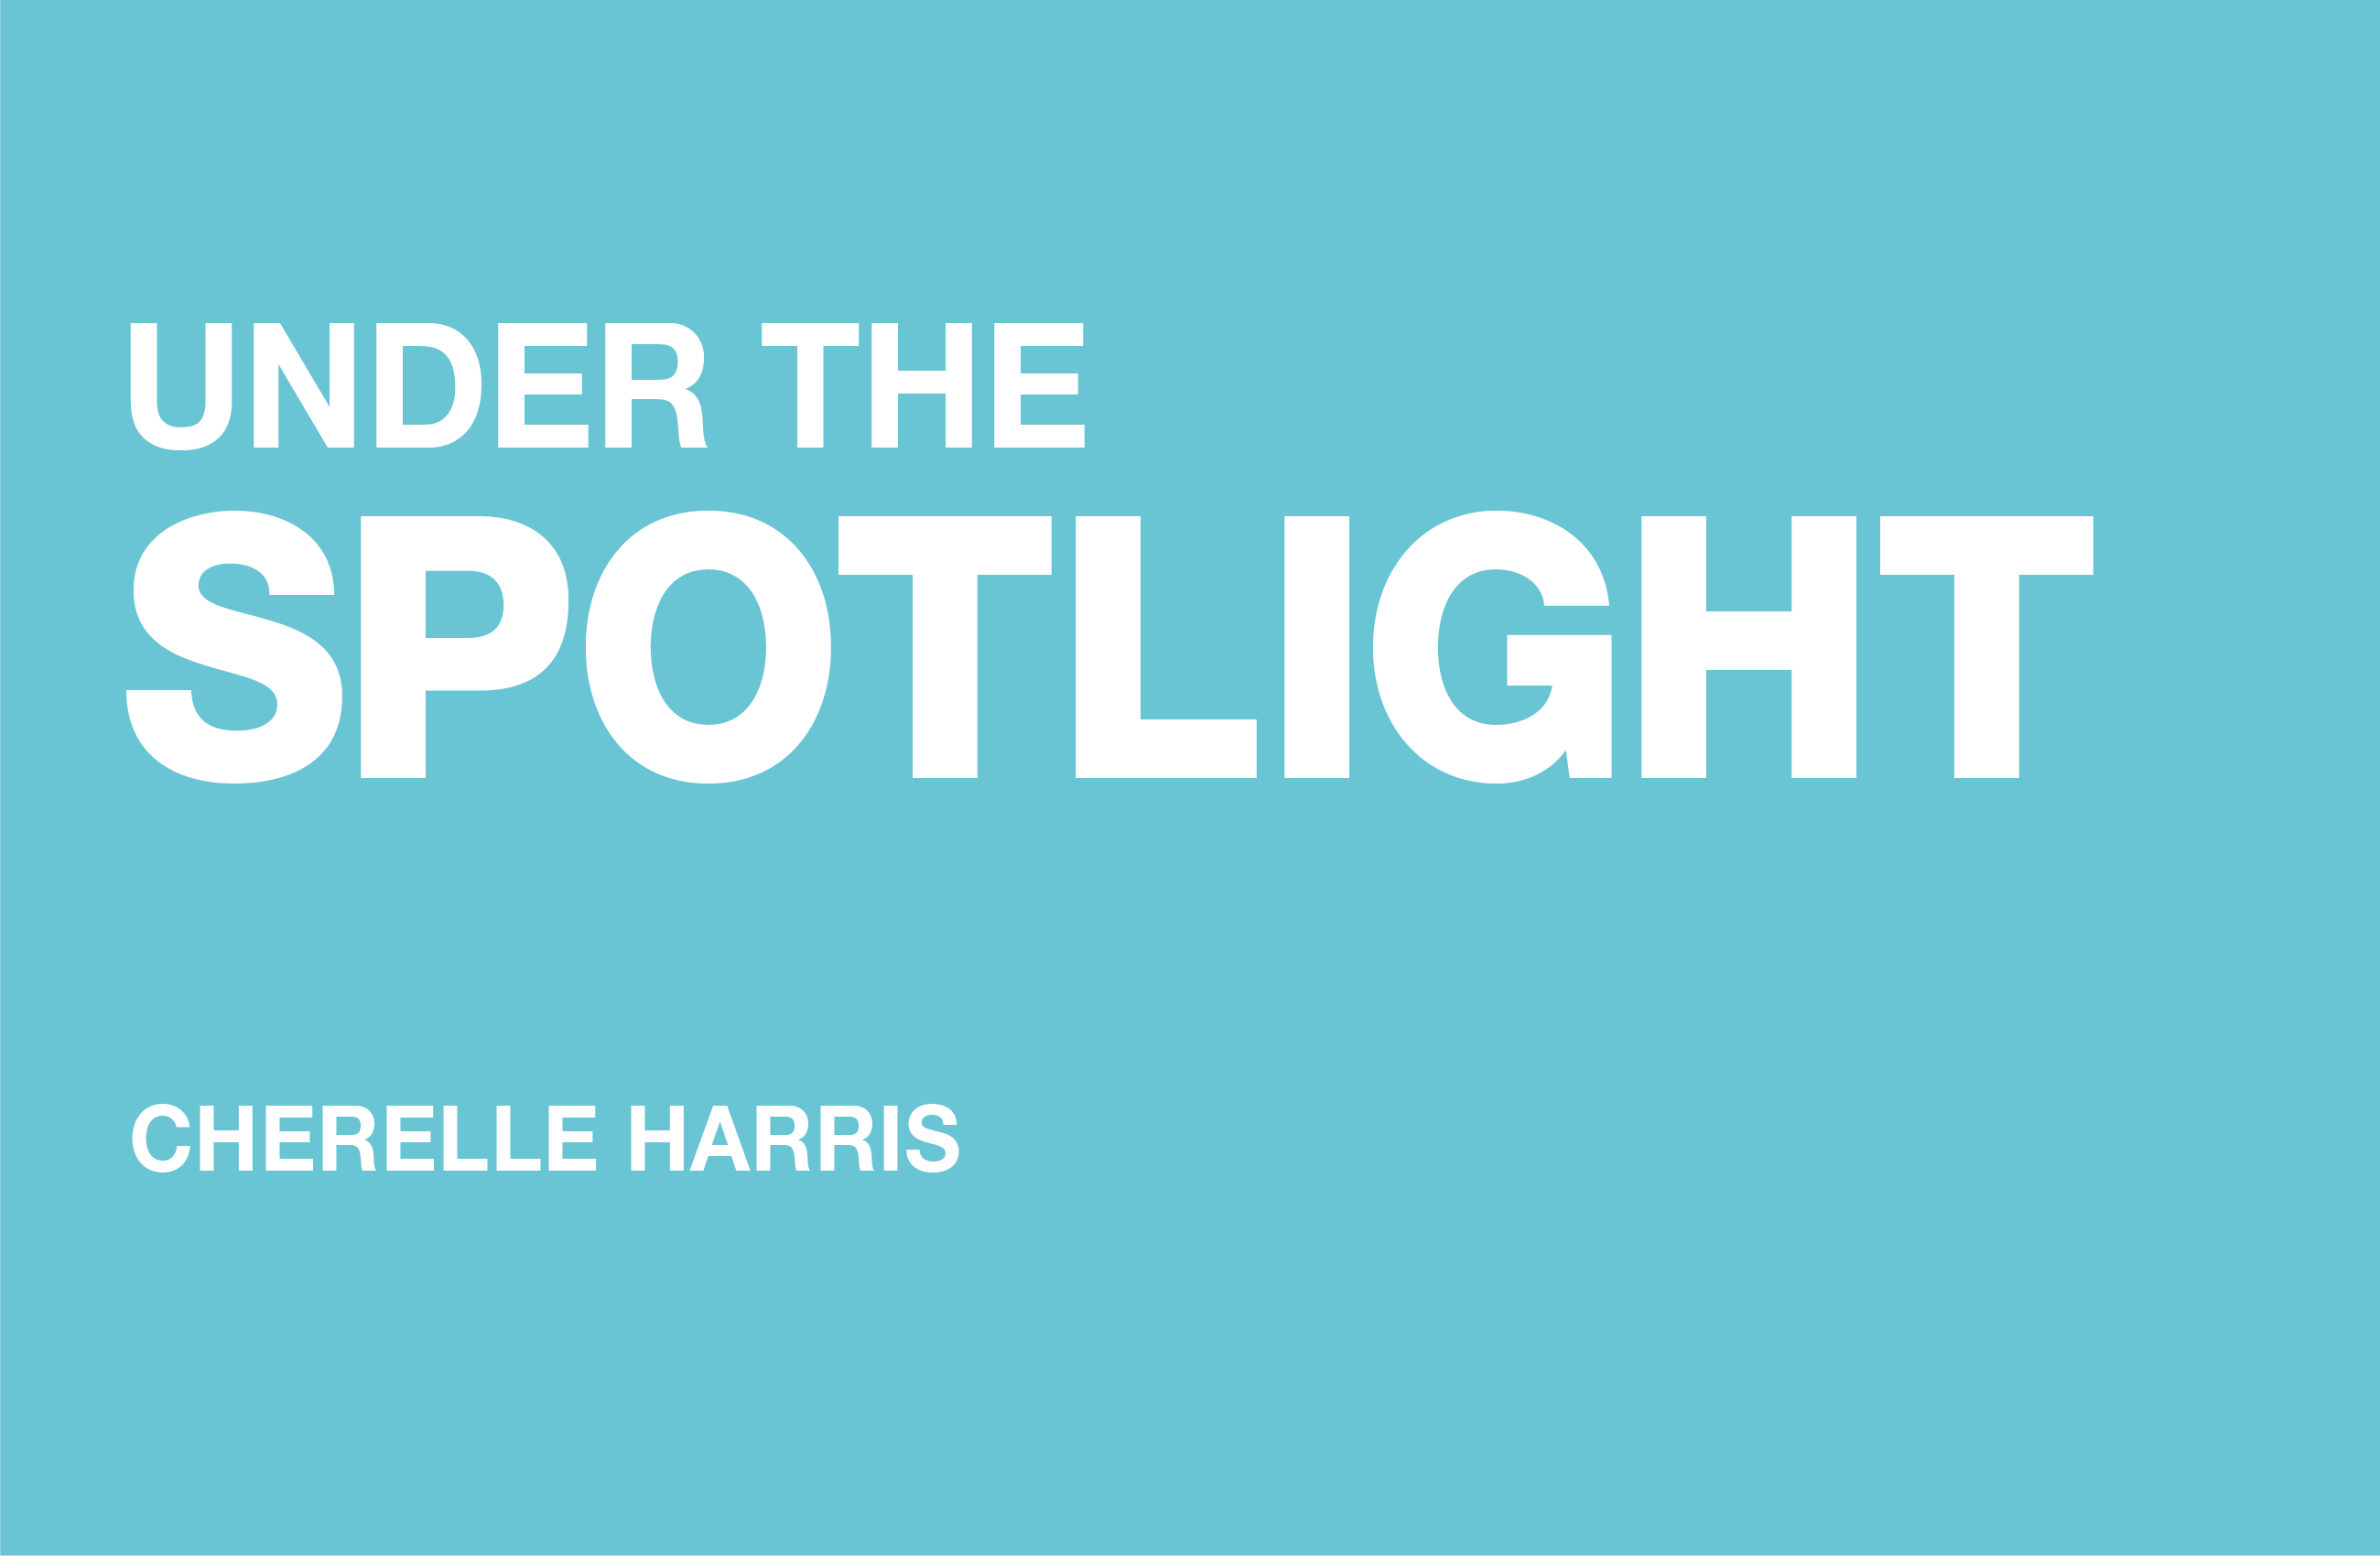 Internal Sales Manager, Cherelle Harris from Dufaylite is under the spot light